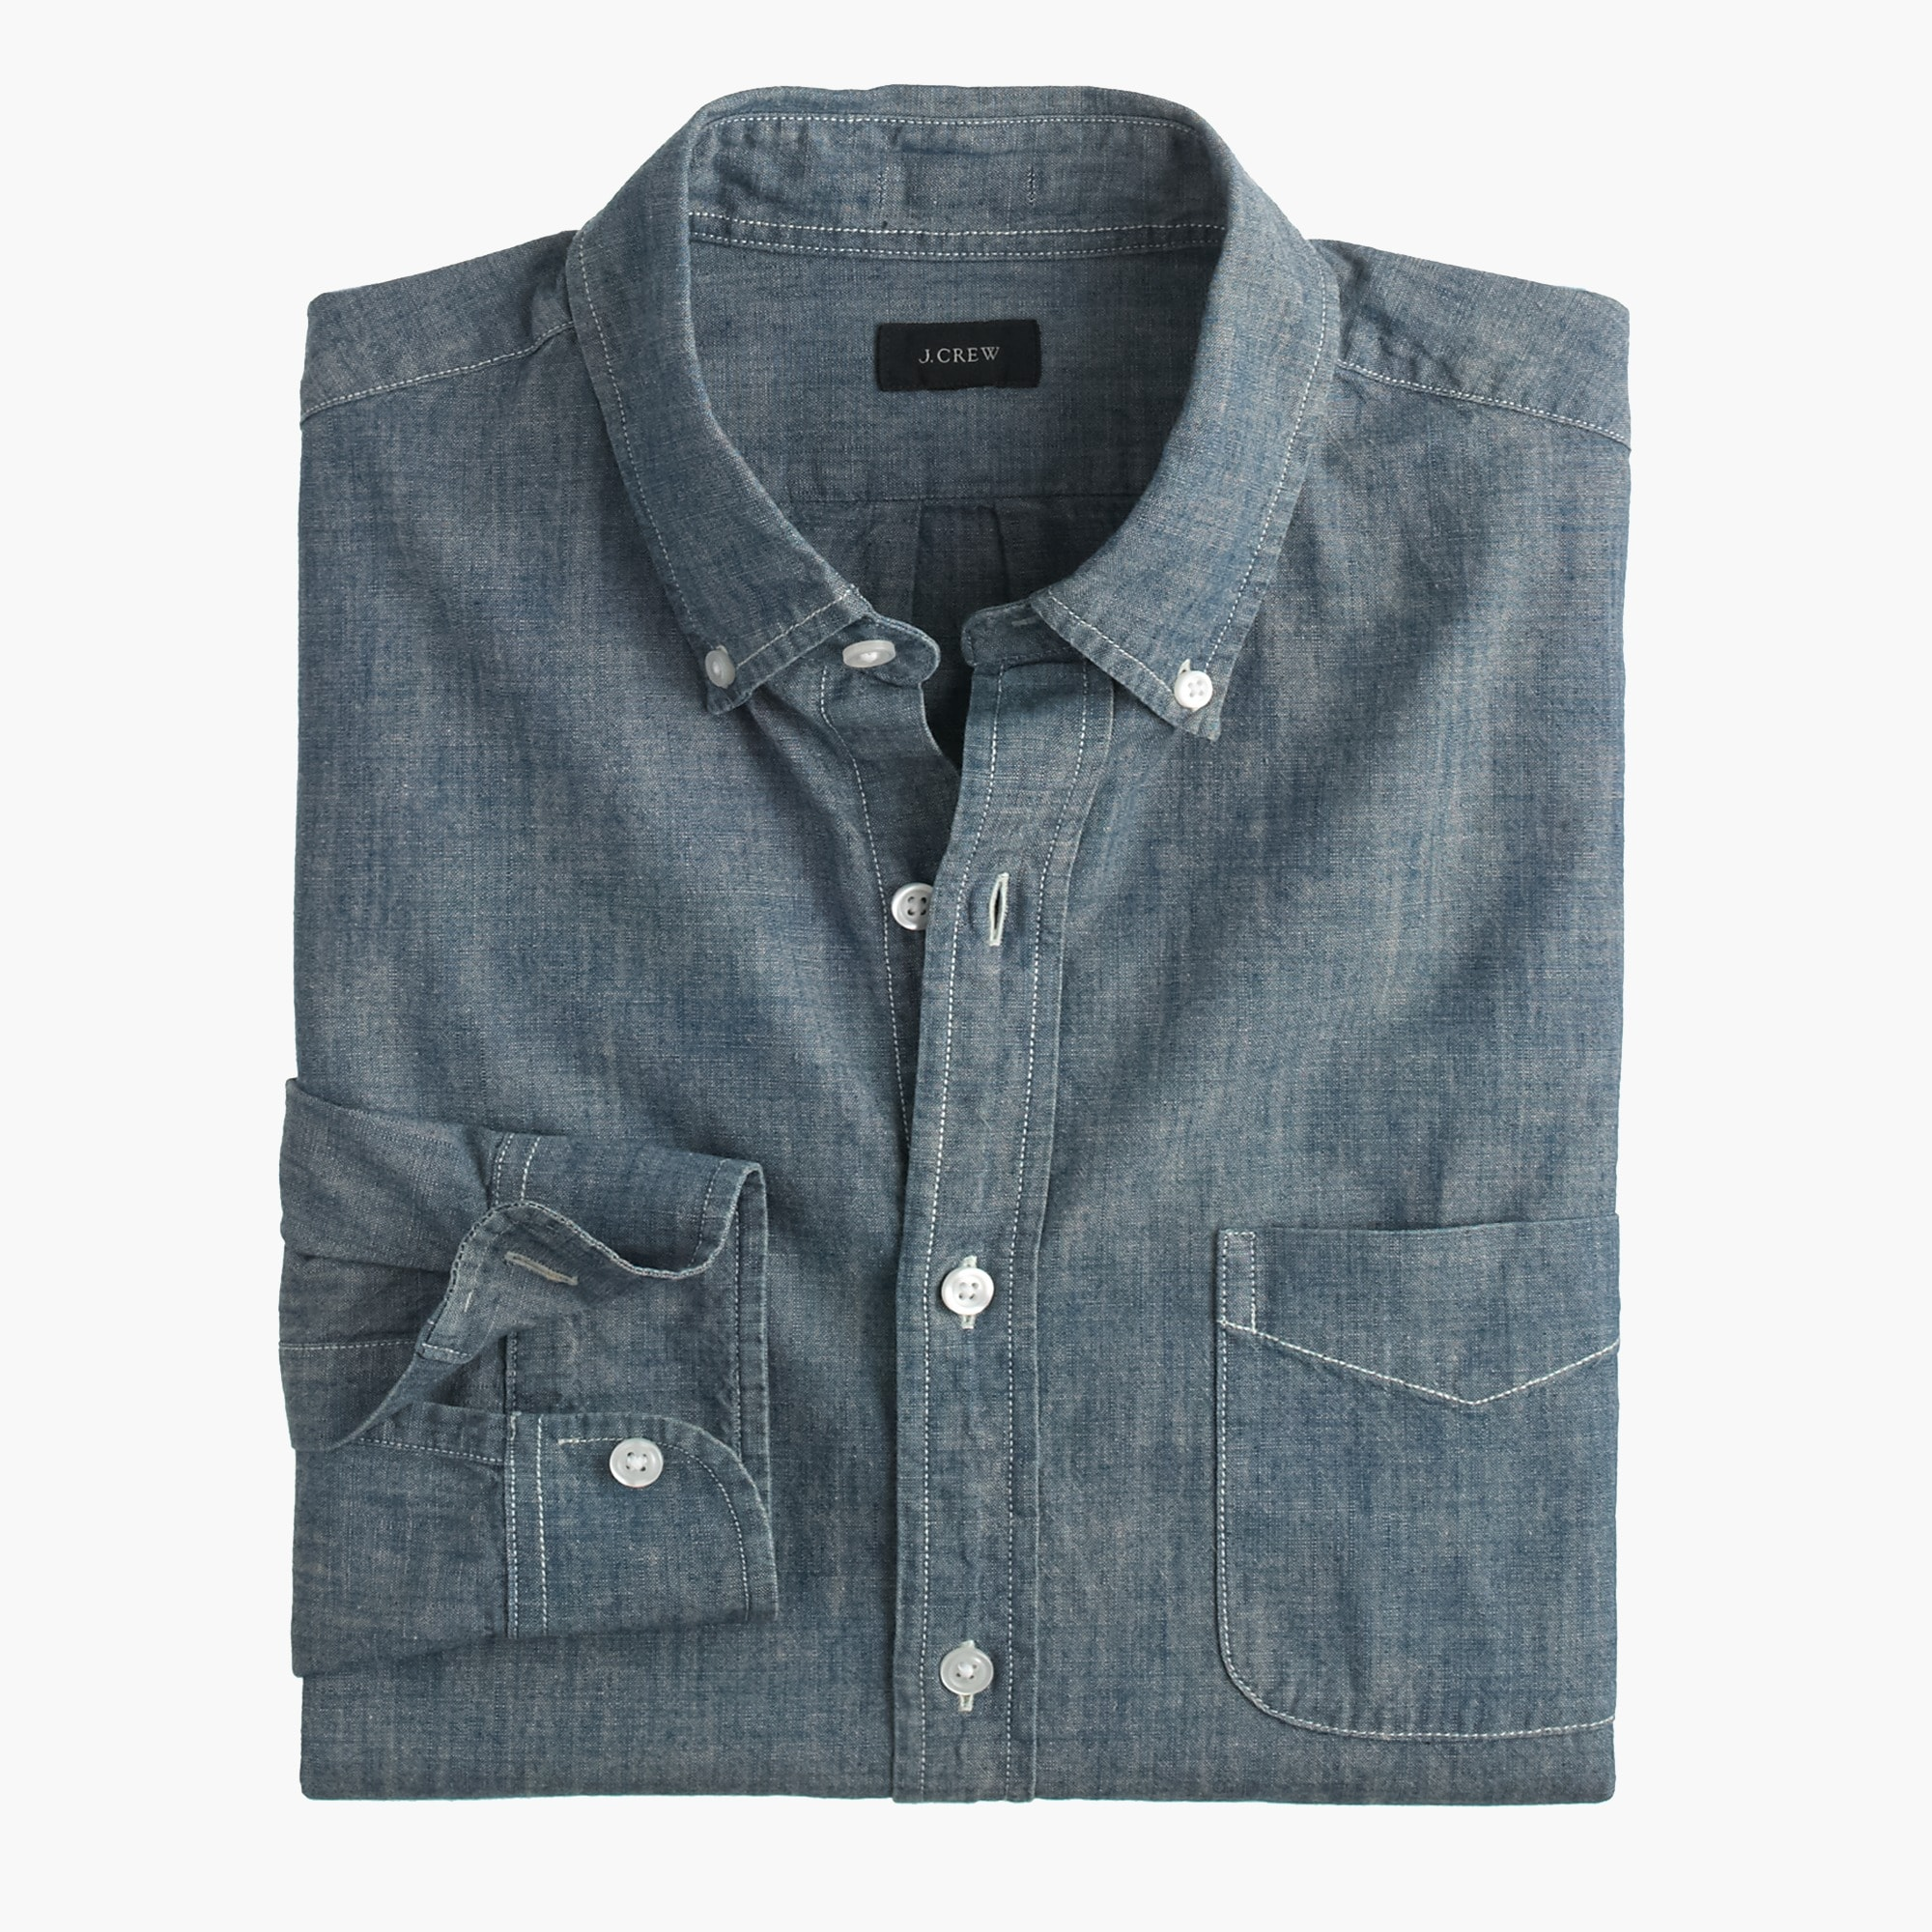 mens Slim indigo Japanese chambray shirt